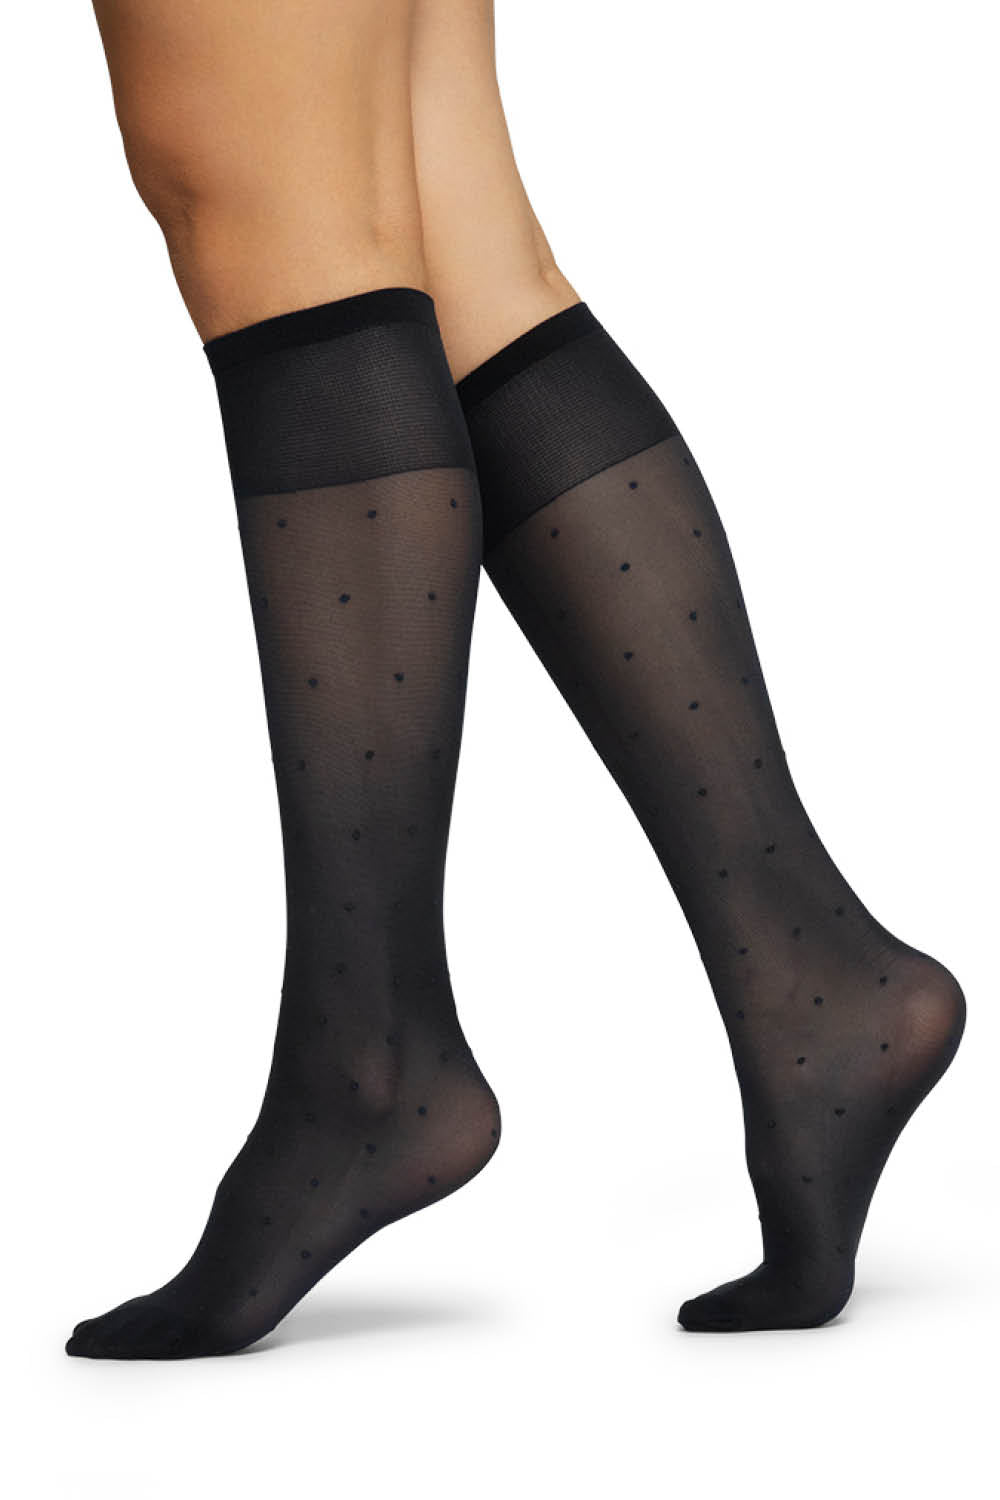 Doris Dots Knee High Socks in Black